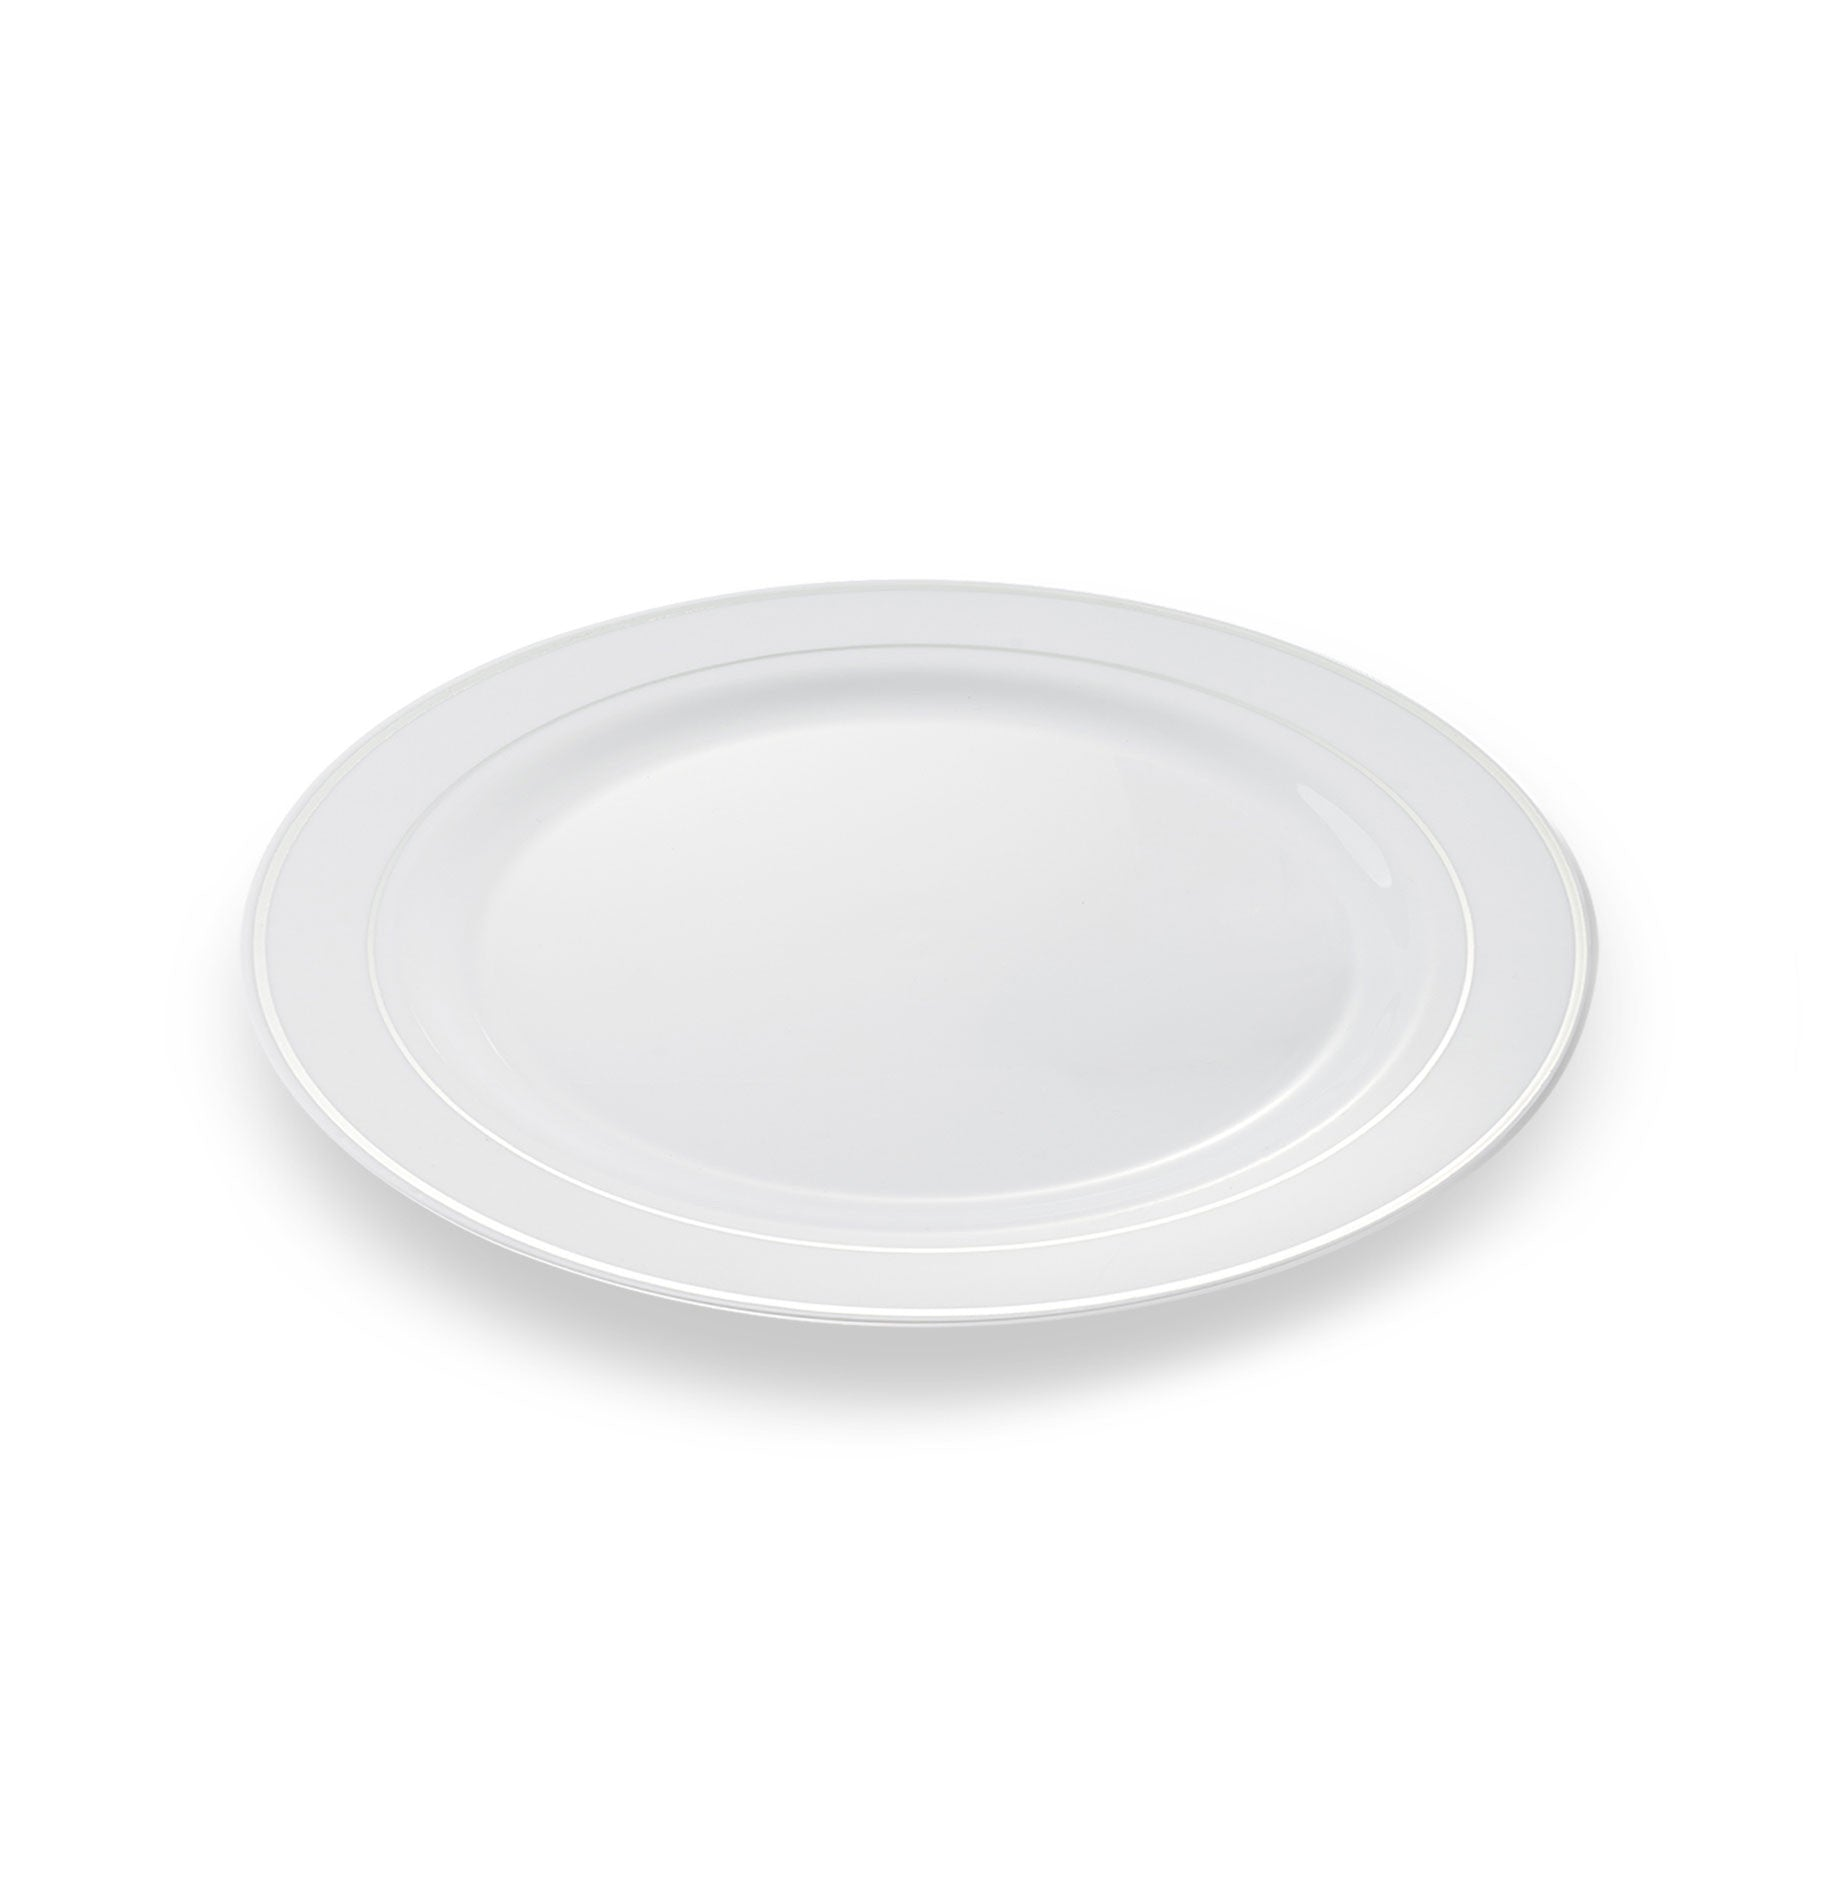 sc 1 st  Simply Disposables & 20 x Small Disposable Plates | Silver Rim 7.5